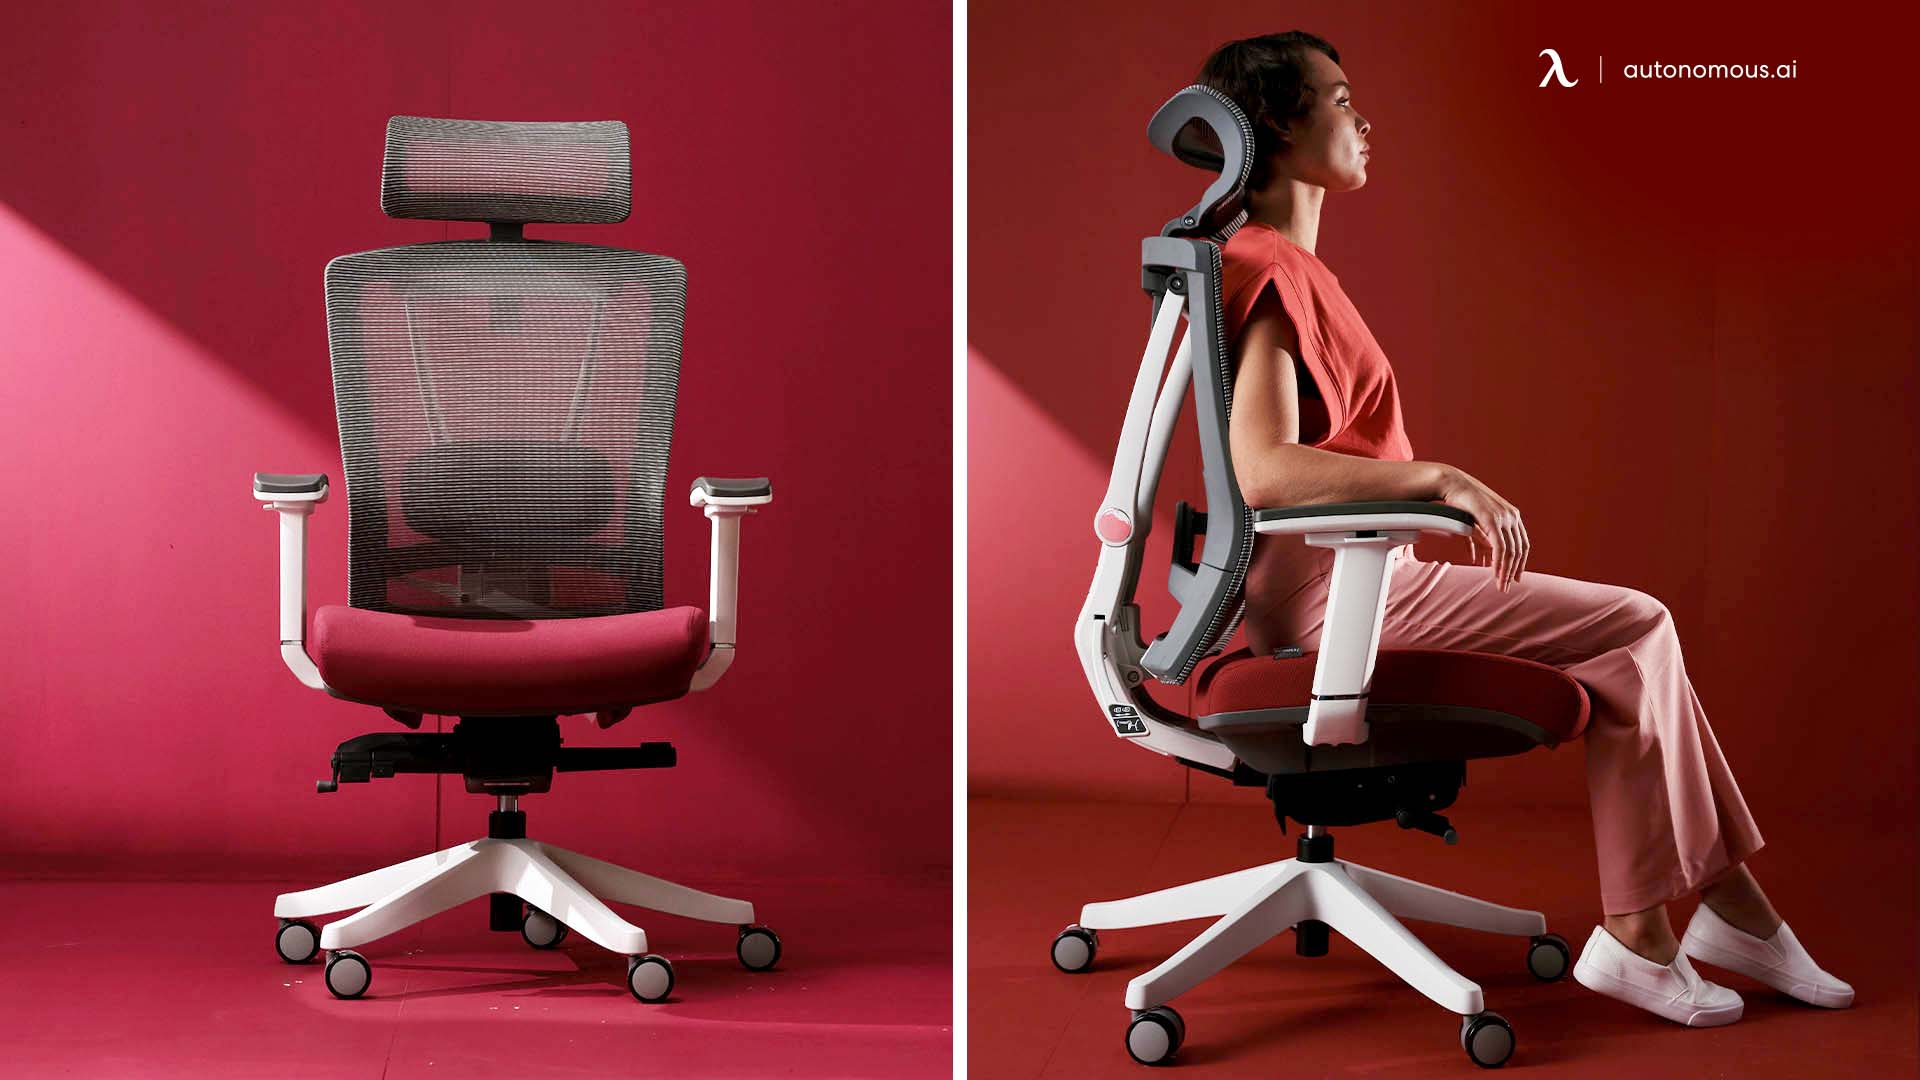 What to Look for in an Ergonomic Chair